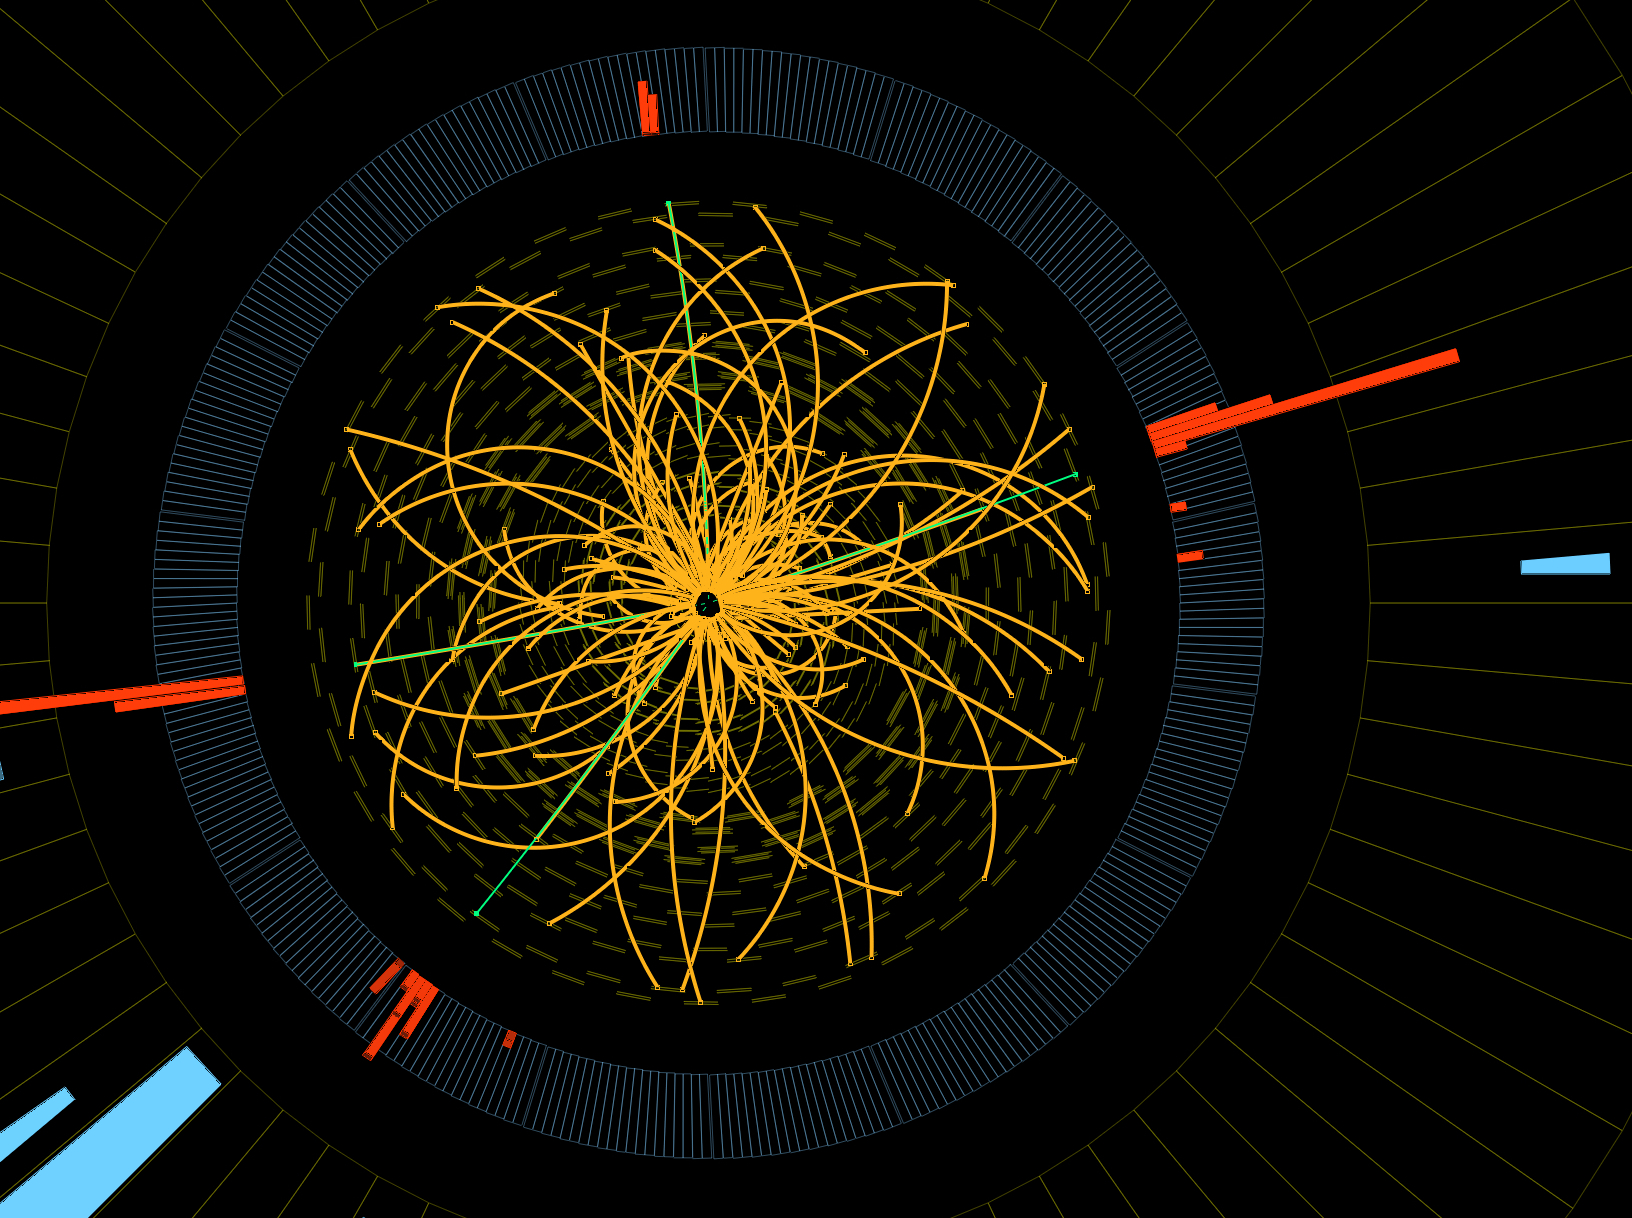 Candidate events in the CMS Standard Model Higgs Search using 2010 and 2011